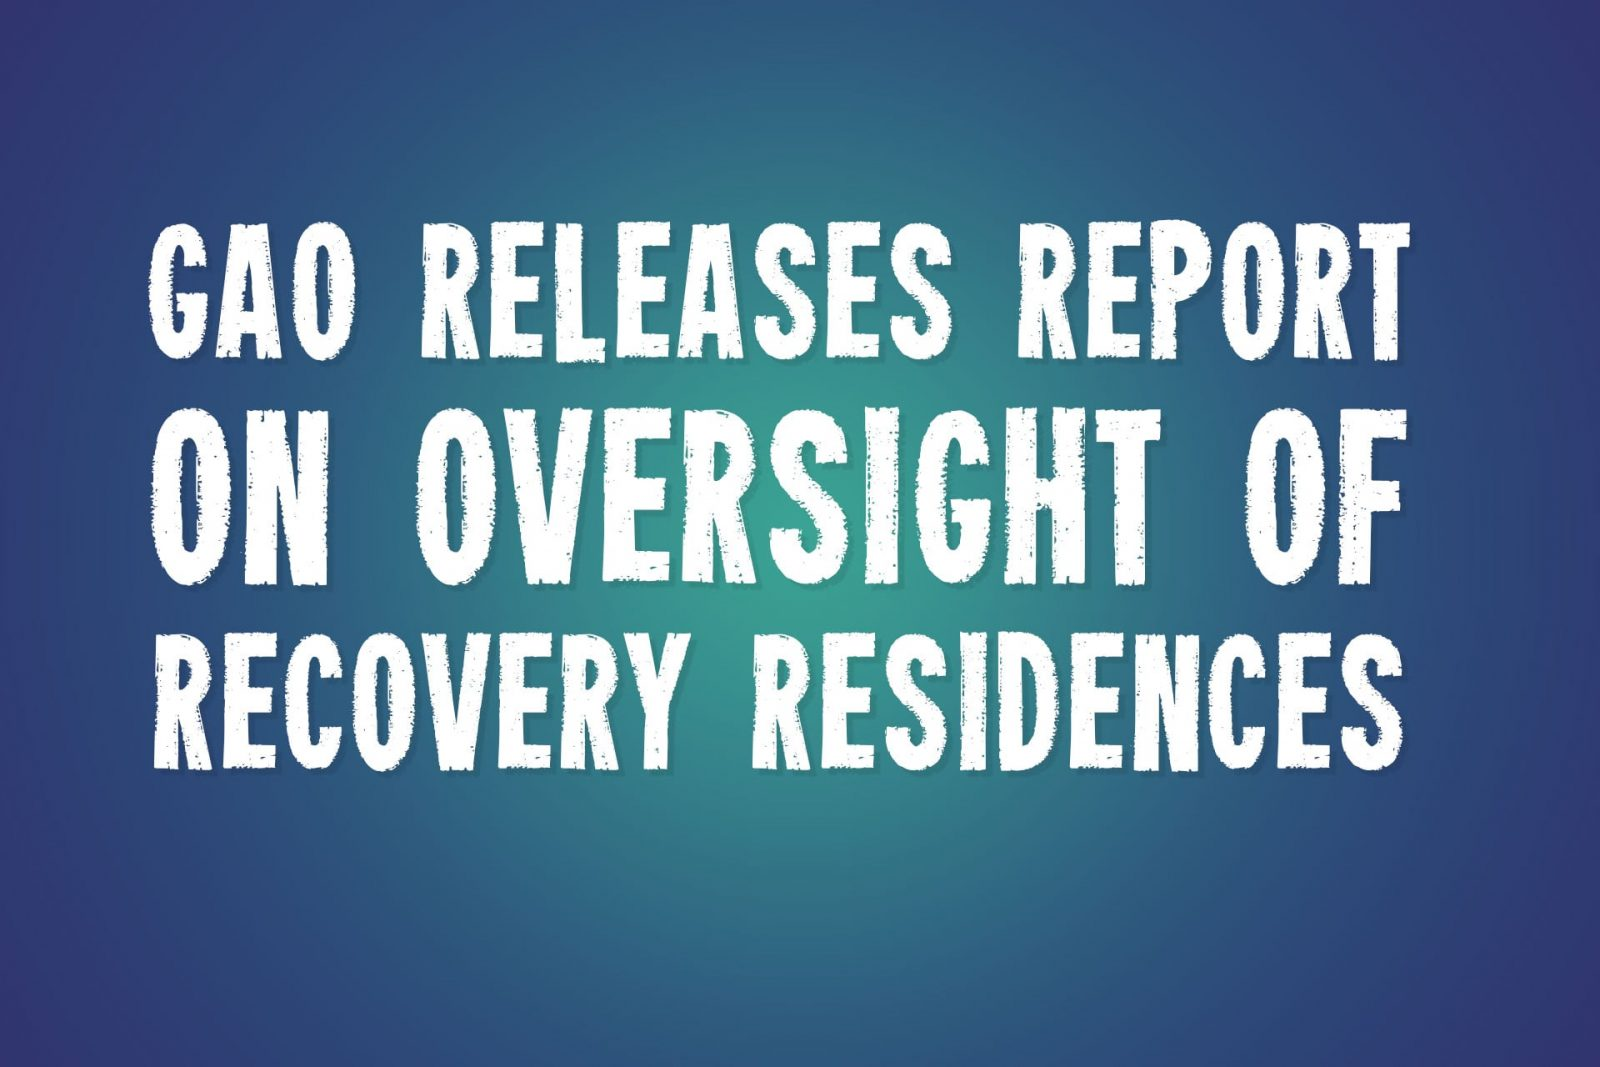 GAO Releases Report on Oversight of Recovery Residences